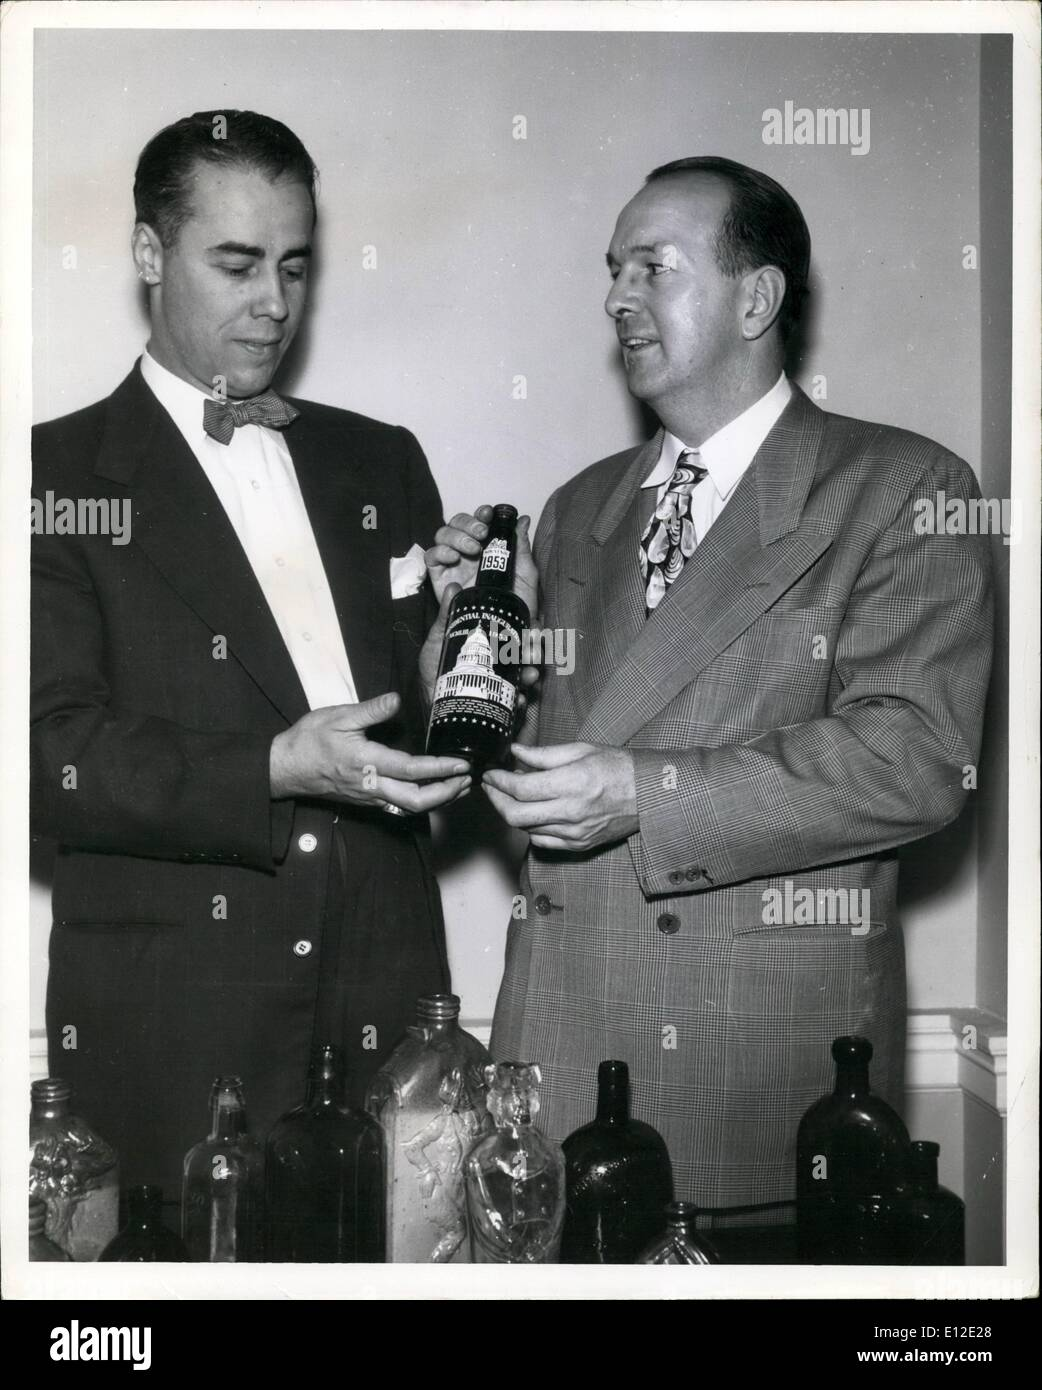 Dec. 15, 2011 - Kenneth E. Snow, director of the Cambridge Antique Show, and Milton Babcock, president of the New England Antiques Association, discuss the 1953 Souvenir Inaugural Bottle as the latest addition to the collection of antique bottles. Fused permanently into the amber bottle which commemorates the 1953 inauguration of the Dwight Eisenhower are a picture of the nation's capital and names, state, birth and inaugural dates of the nation's presidents, including Eisenhower - Stock Image